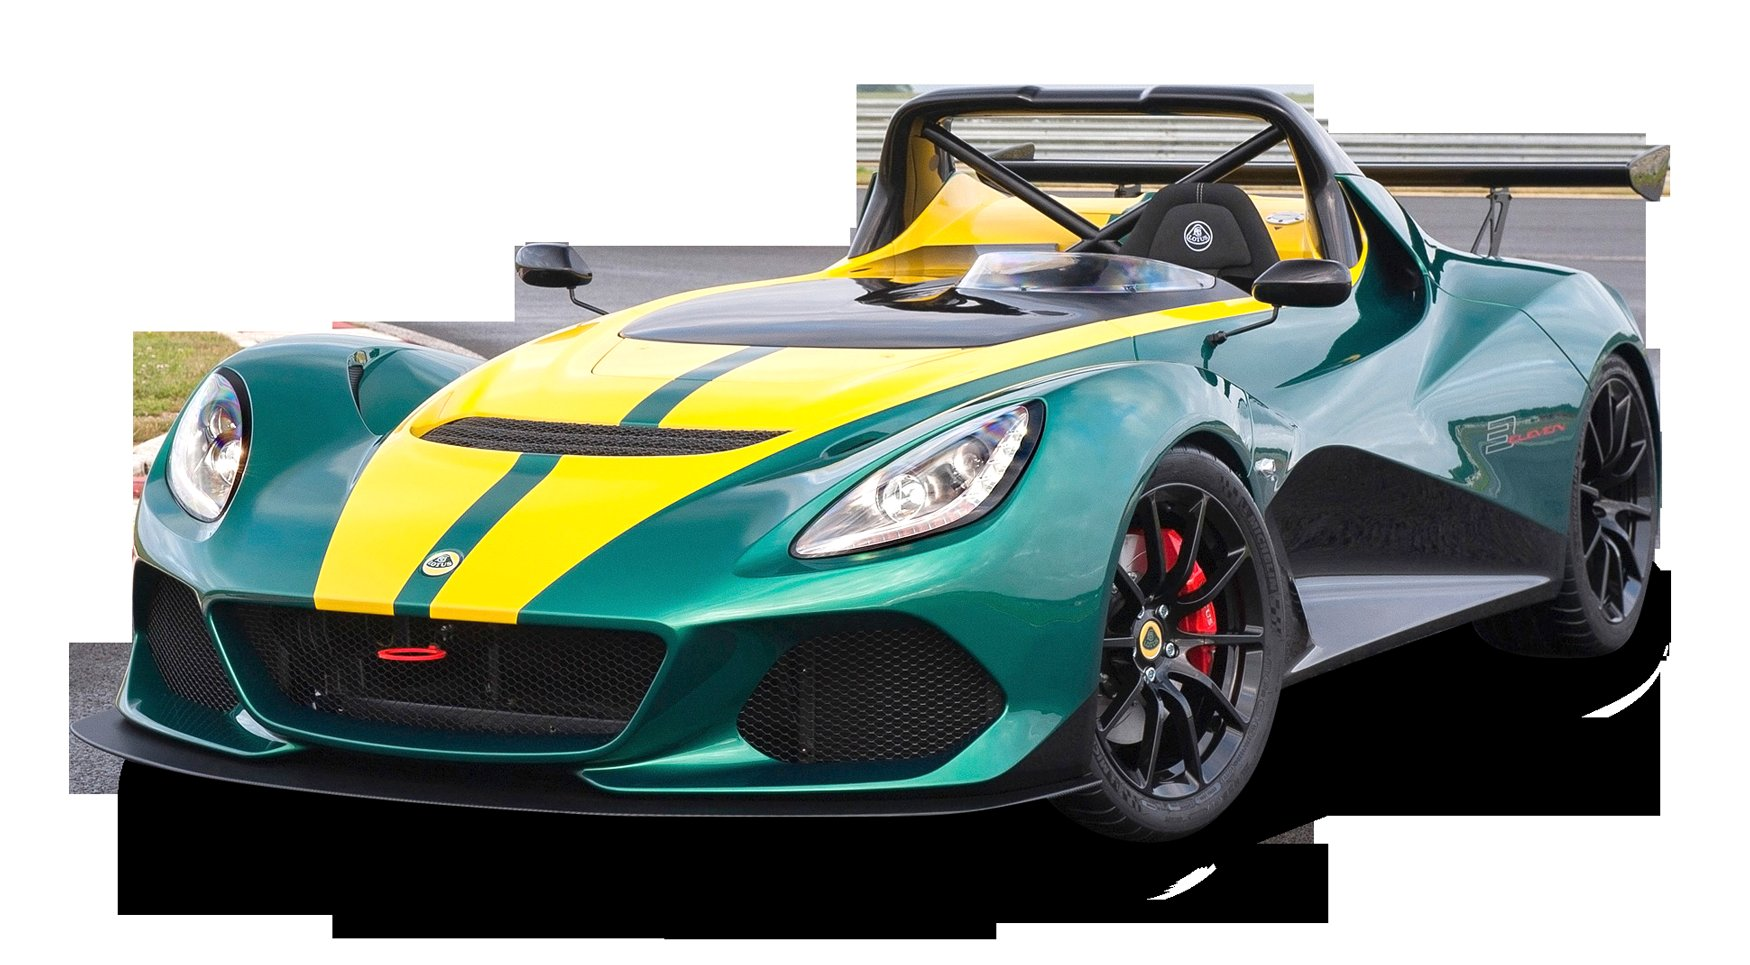 Latest Green Lotus 3 Eleven Sports Car Png Image Pngpix Free Download